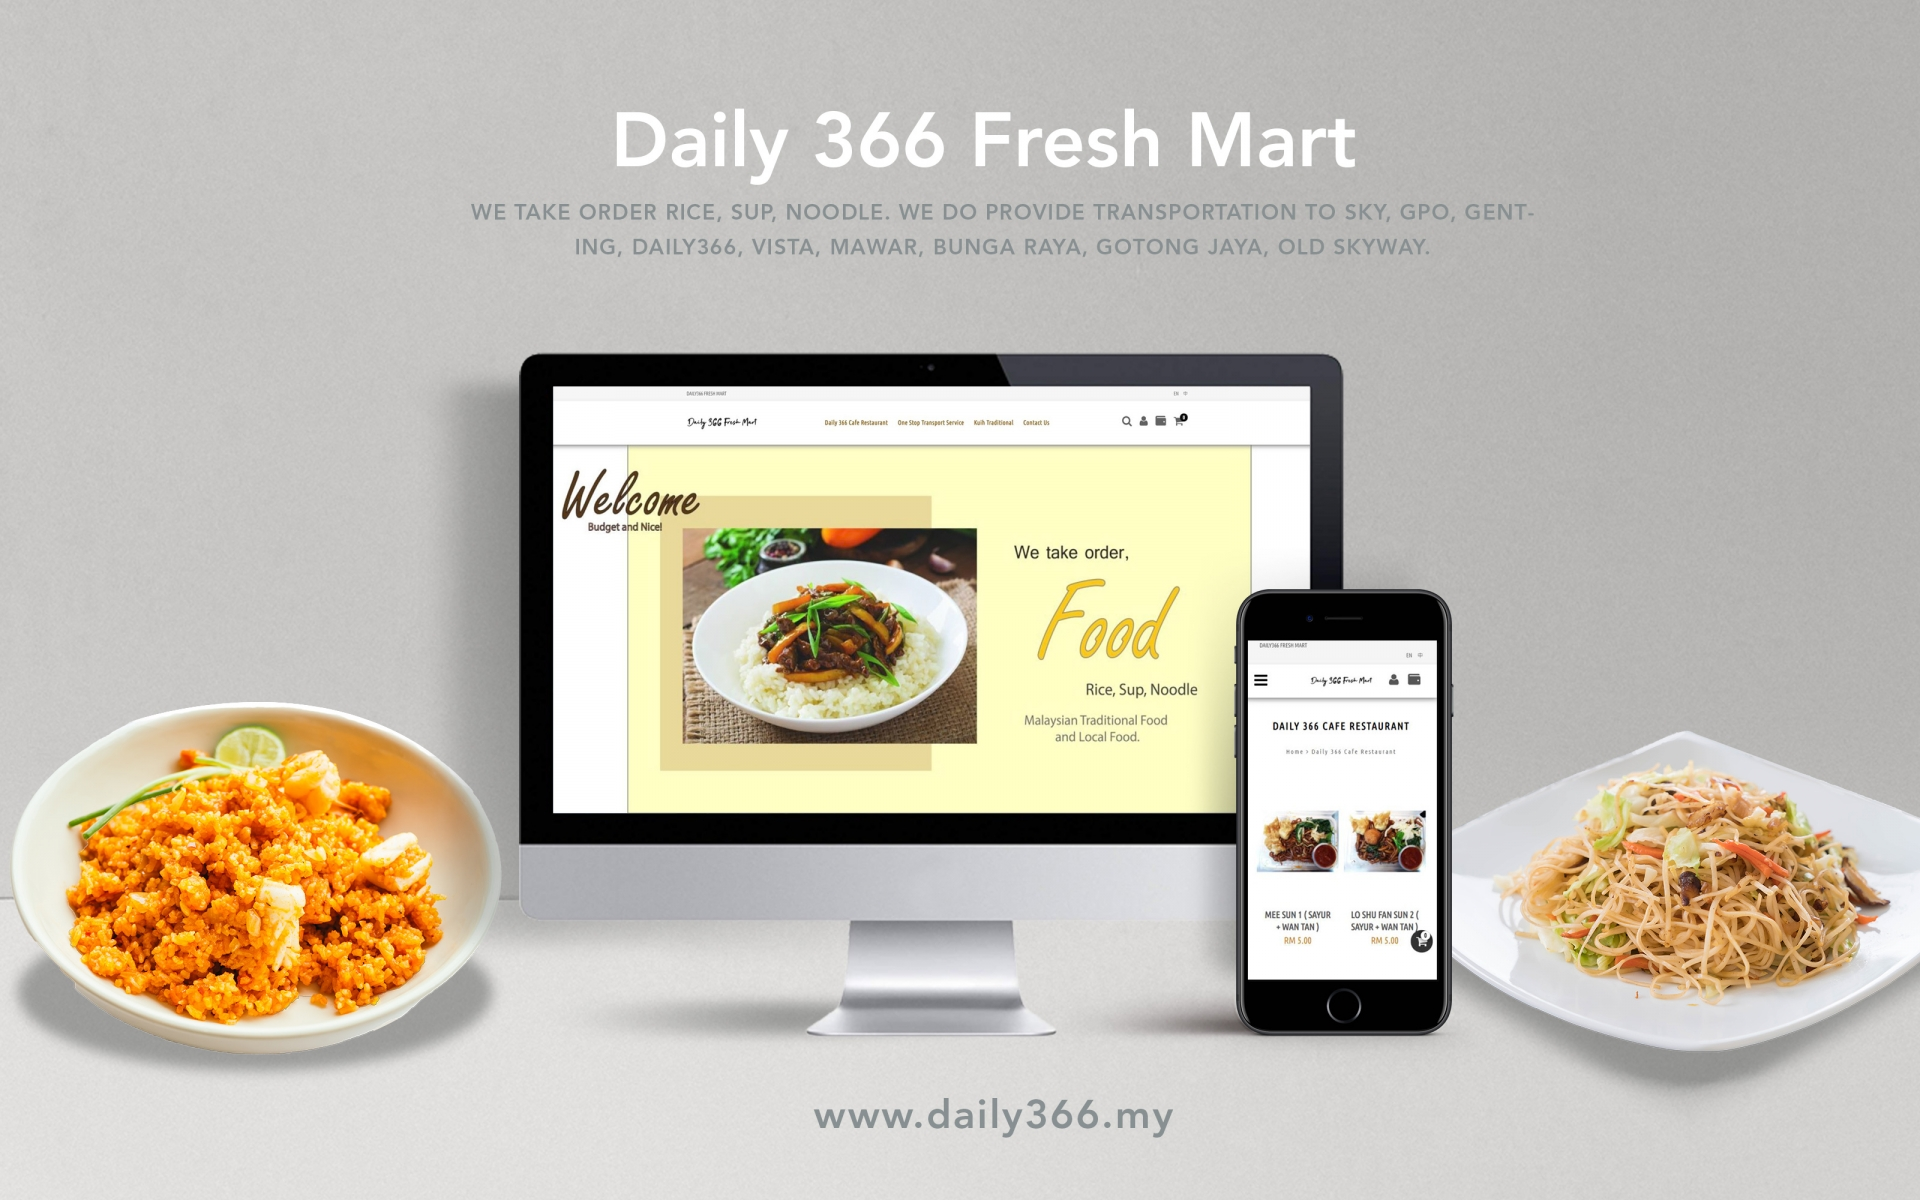 "<a href=""http://daily366.my"" target=""_blank"">Daily 366 Fresh Mart</a>"